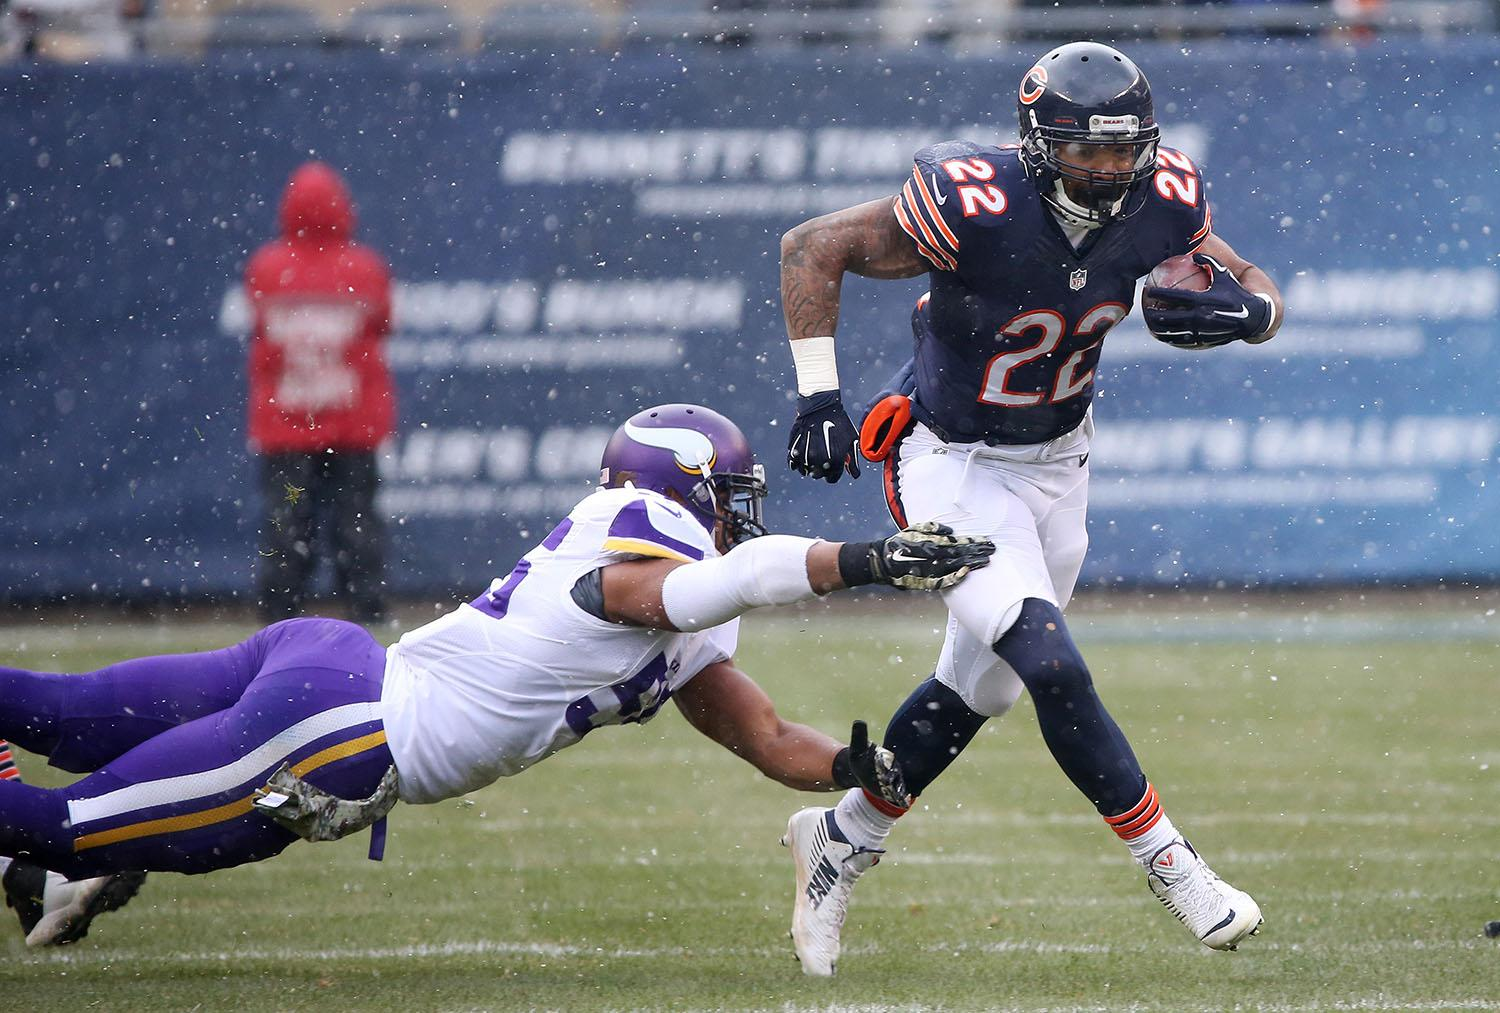 The+Bears+will+need+to+rely+on+Matt+Forte%2C+an+elite+runner+and+pass+catcher%2C+if+they+want+to+compete+against+the+Lions